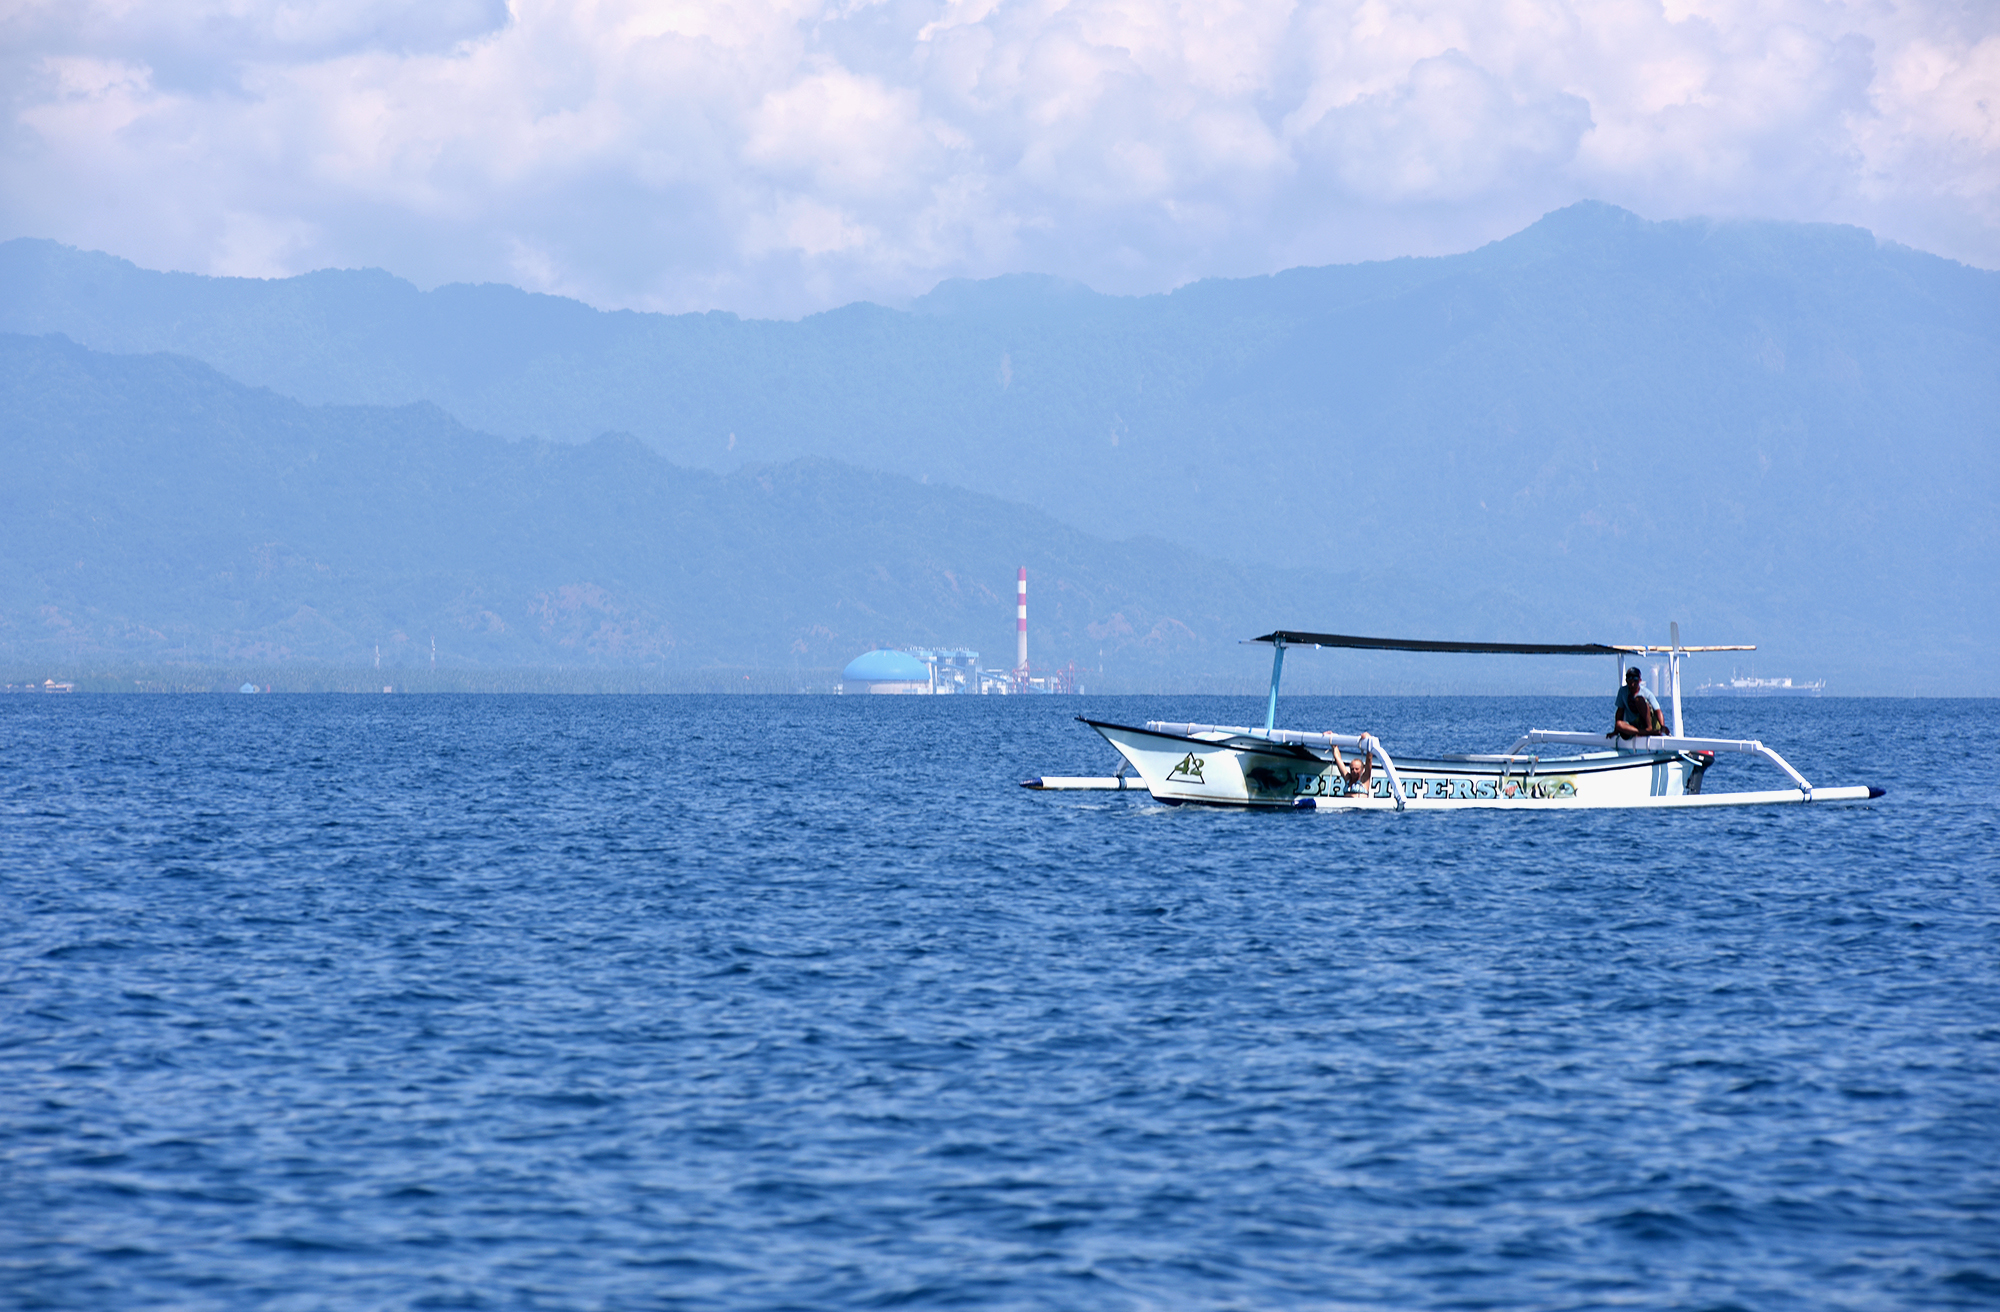 A tourist boat waits for dolphins off the north coast of Bali near Celukan Bawang. Dolphins and whales have become harder to spot since the power plant started operating. (Image: Ade Dani)